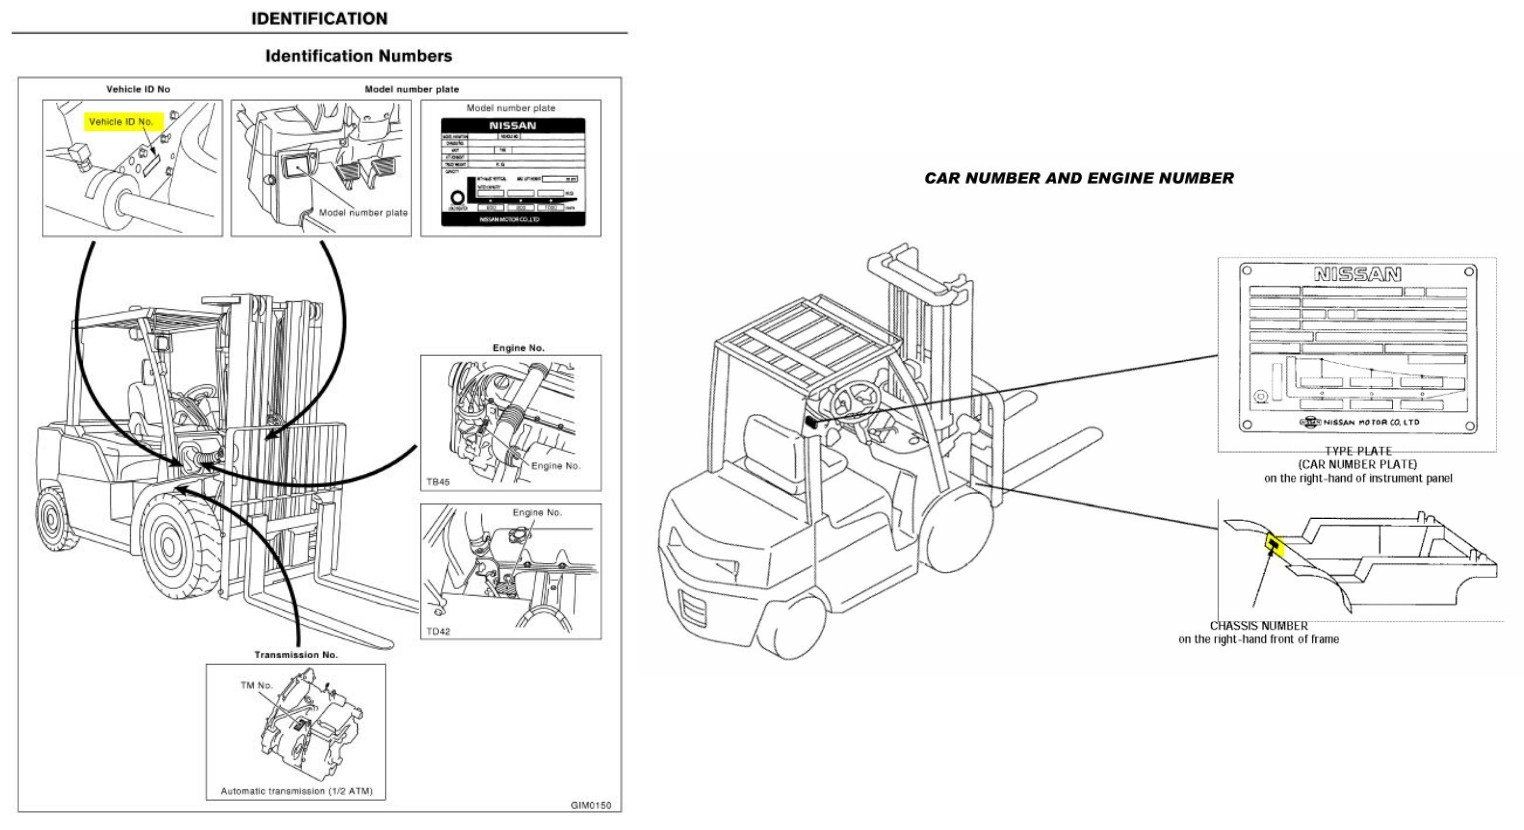 Taylor Dunn Carts | Wiring Diagram Database on taylor dunn service manual, taylor dunn safety, taylor dunn b2 48, taylor dunn ss 536 manual, taylor dunn accelerator schematic, taylor dunn b6 10 manuals, taylor dunn tee bird battery installation diagram, taylor dunn parts diagram, taylor dunn t-bird, harley-davidson golf cart electrical diagram, yamaha golf cart parts diagram, ez go parts diagram,